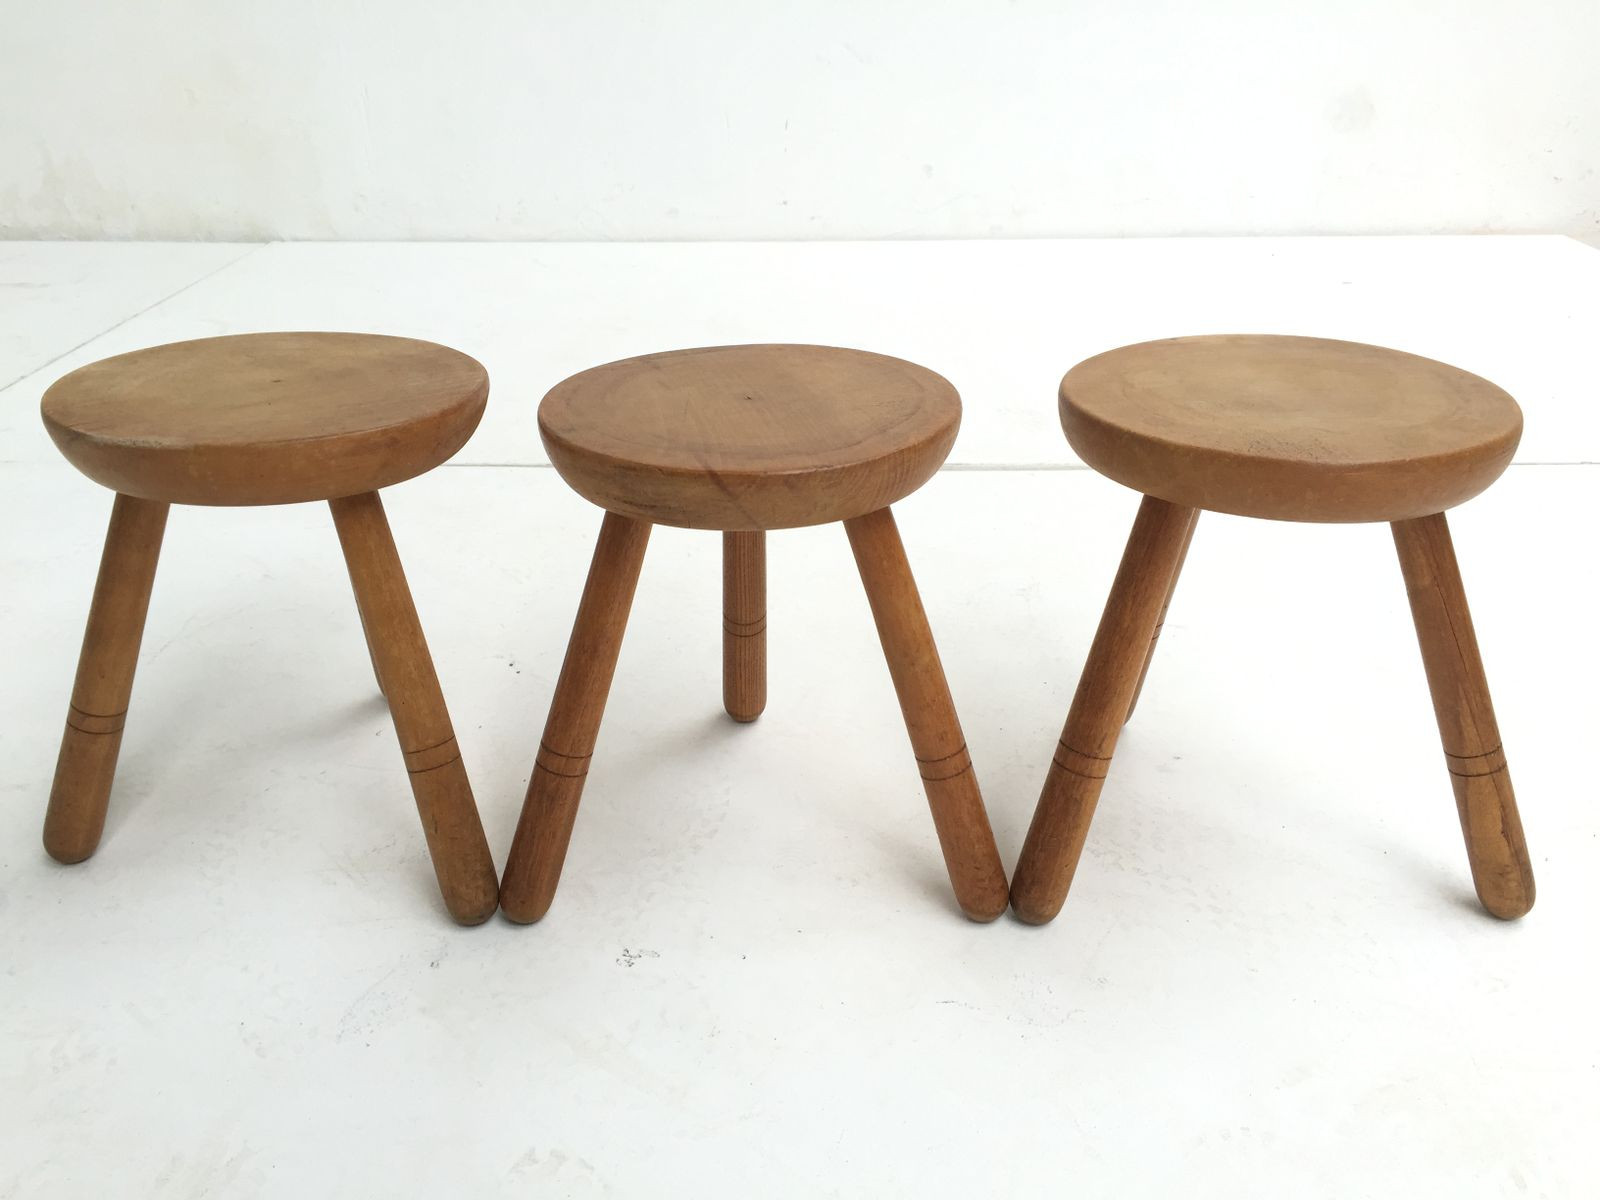 Superb img of Vintage Birch Wood Stools 1970s Set of 3 for sale at Pamono with #71492D color and 1600x1200 pixels